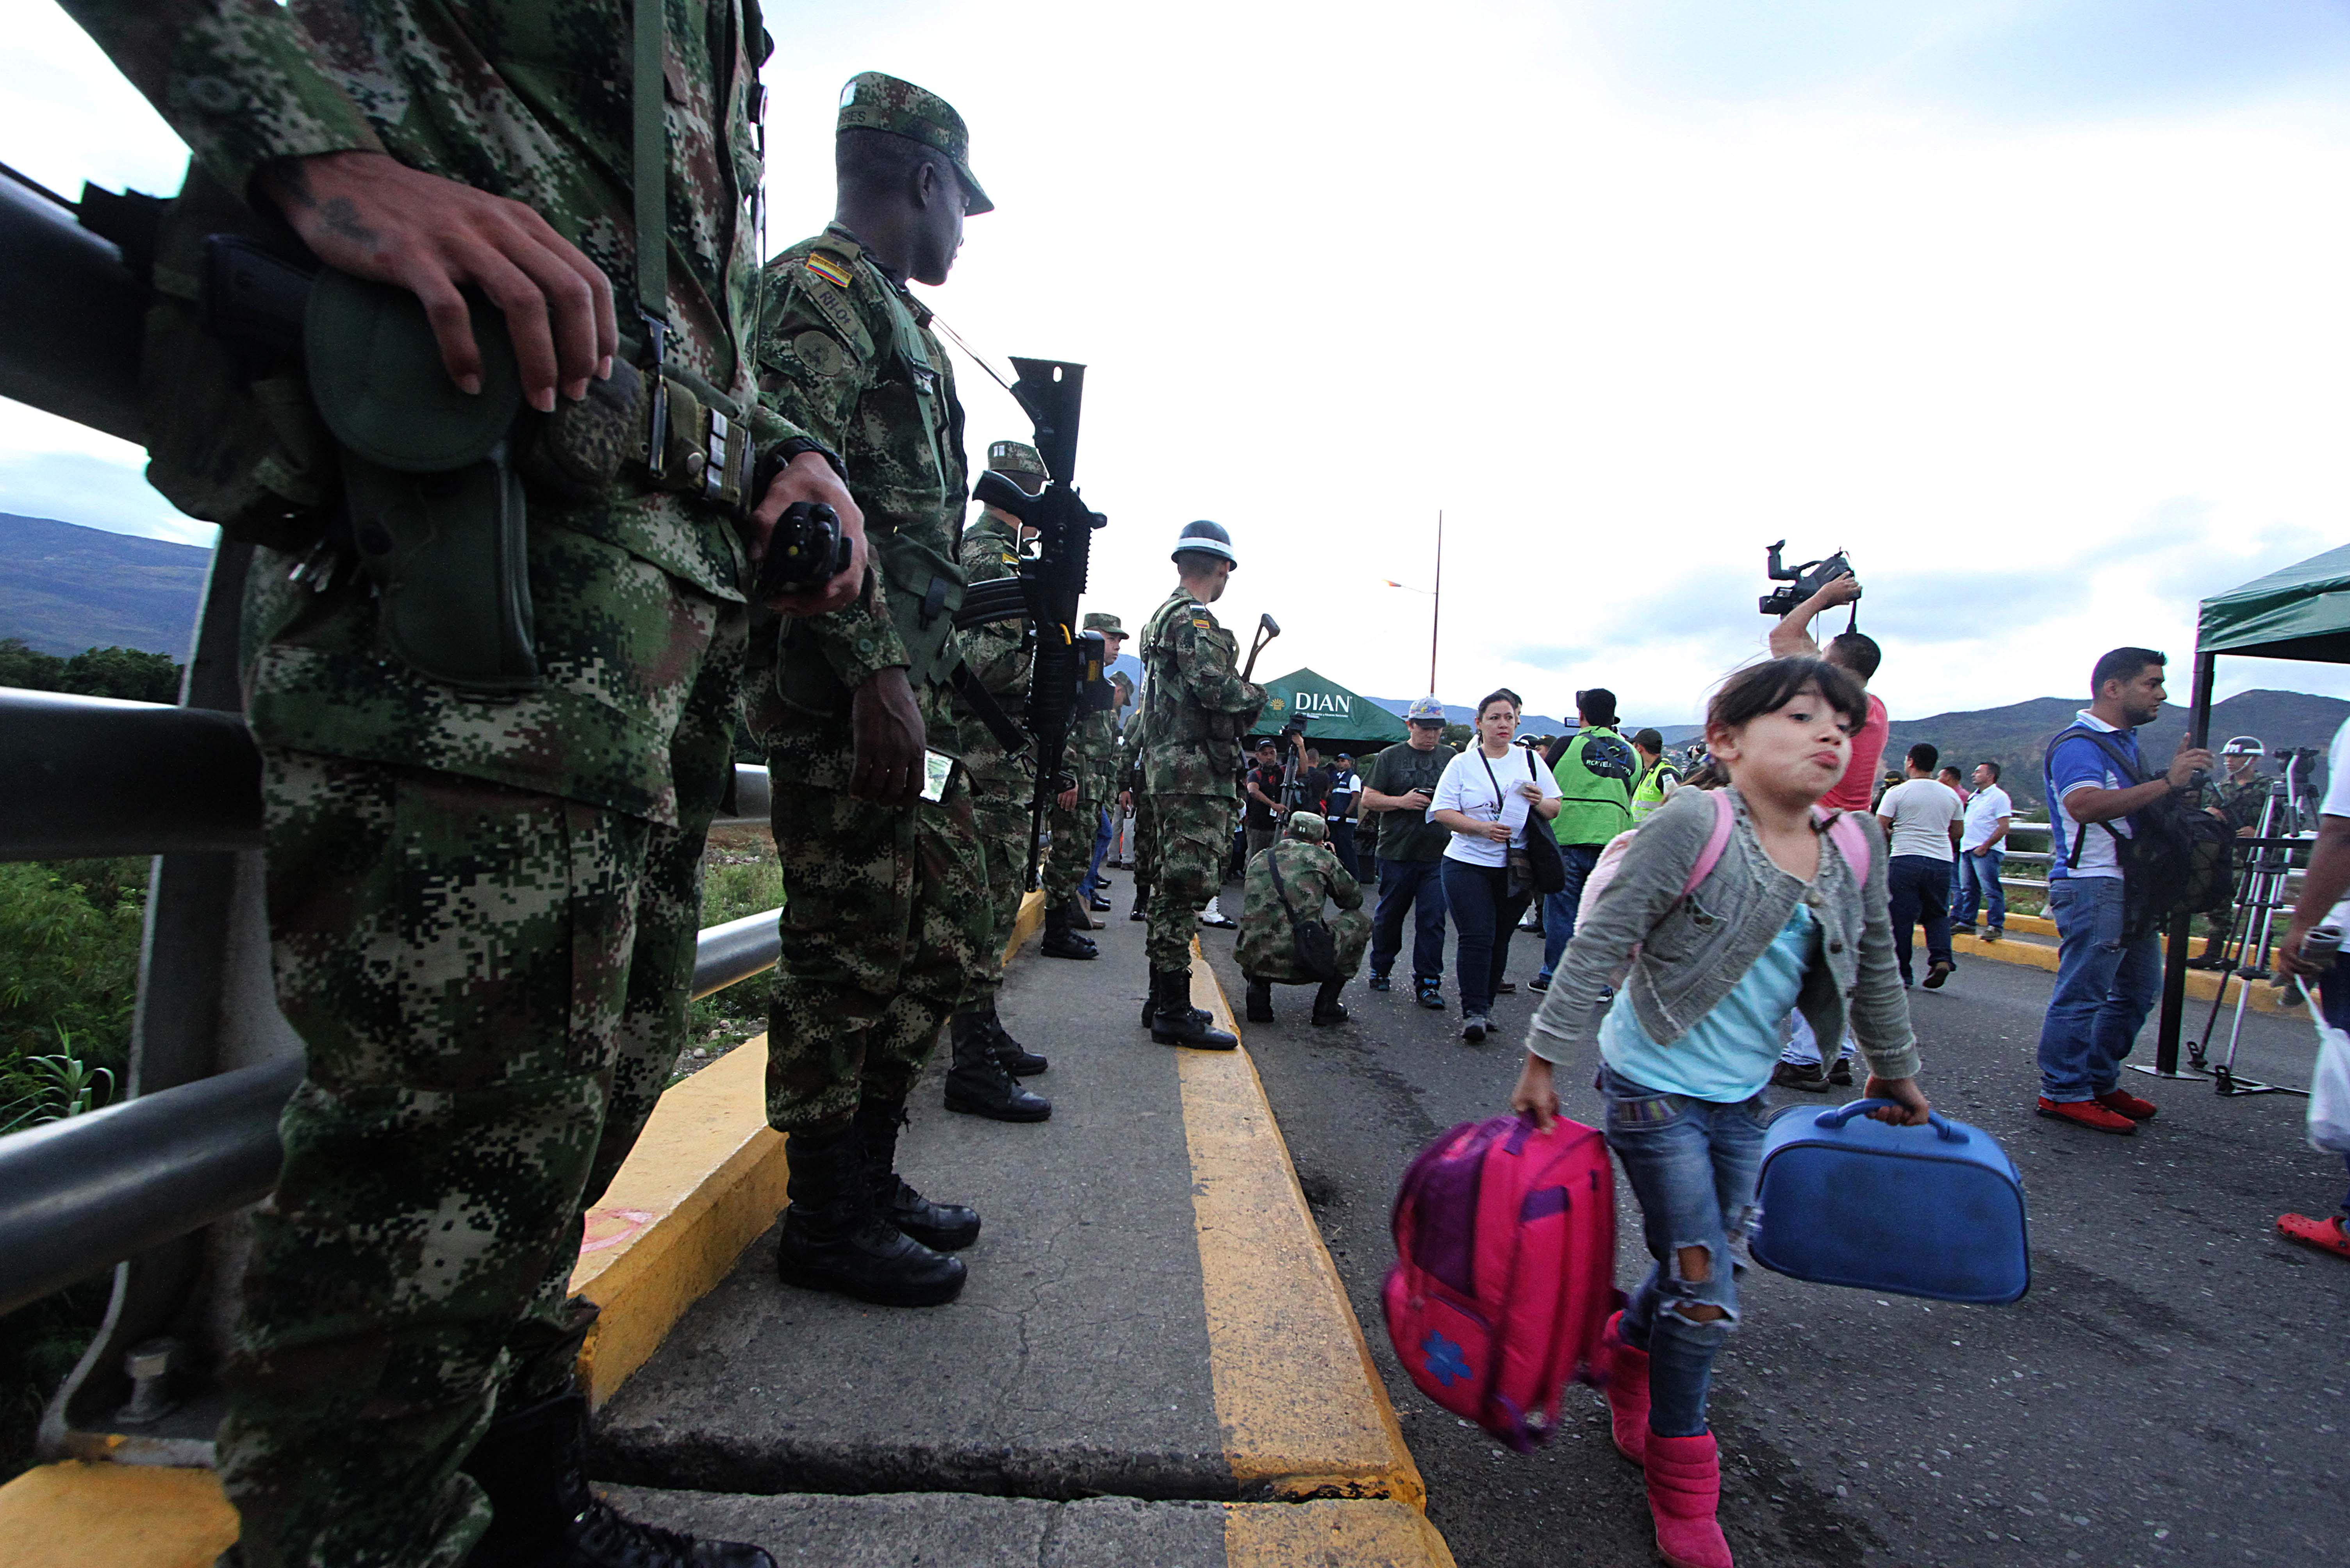 army migration venezuela Migrants and Refugees